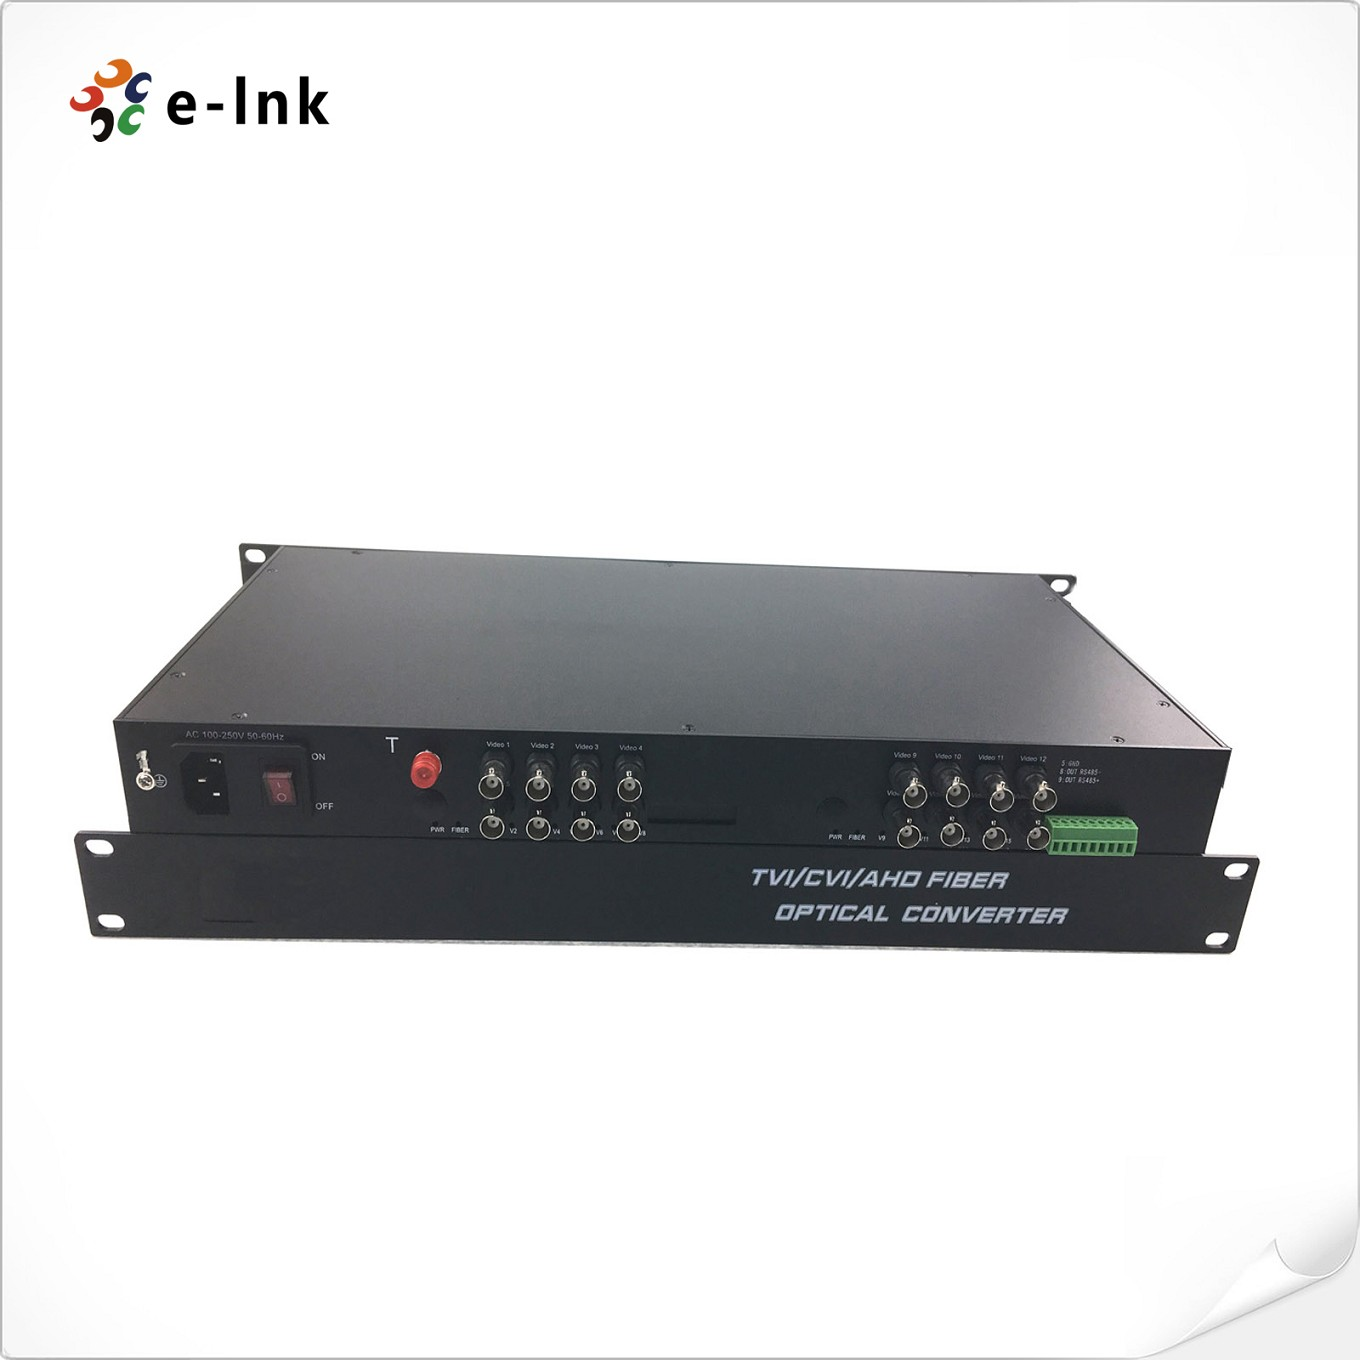 16Ch 5MP HD-AHD/HD-CVI/HD-TVI/CVBS 4-in-1 Video Fiber Converter